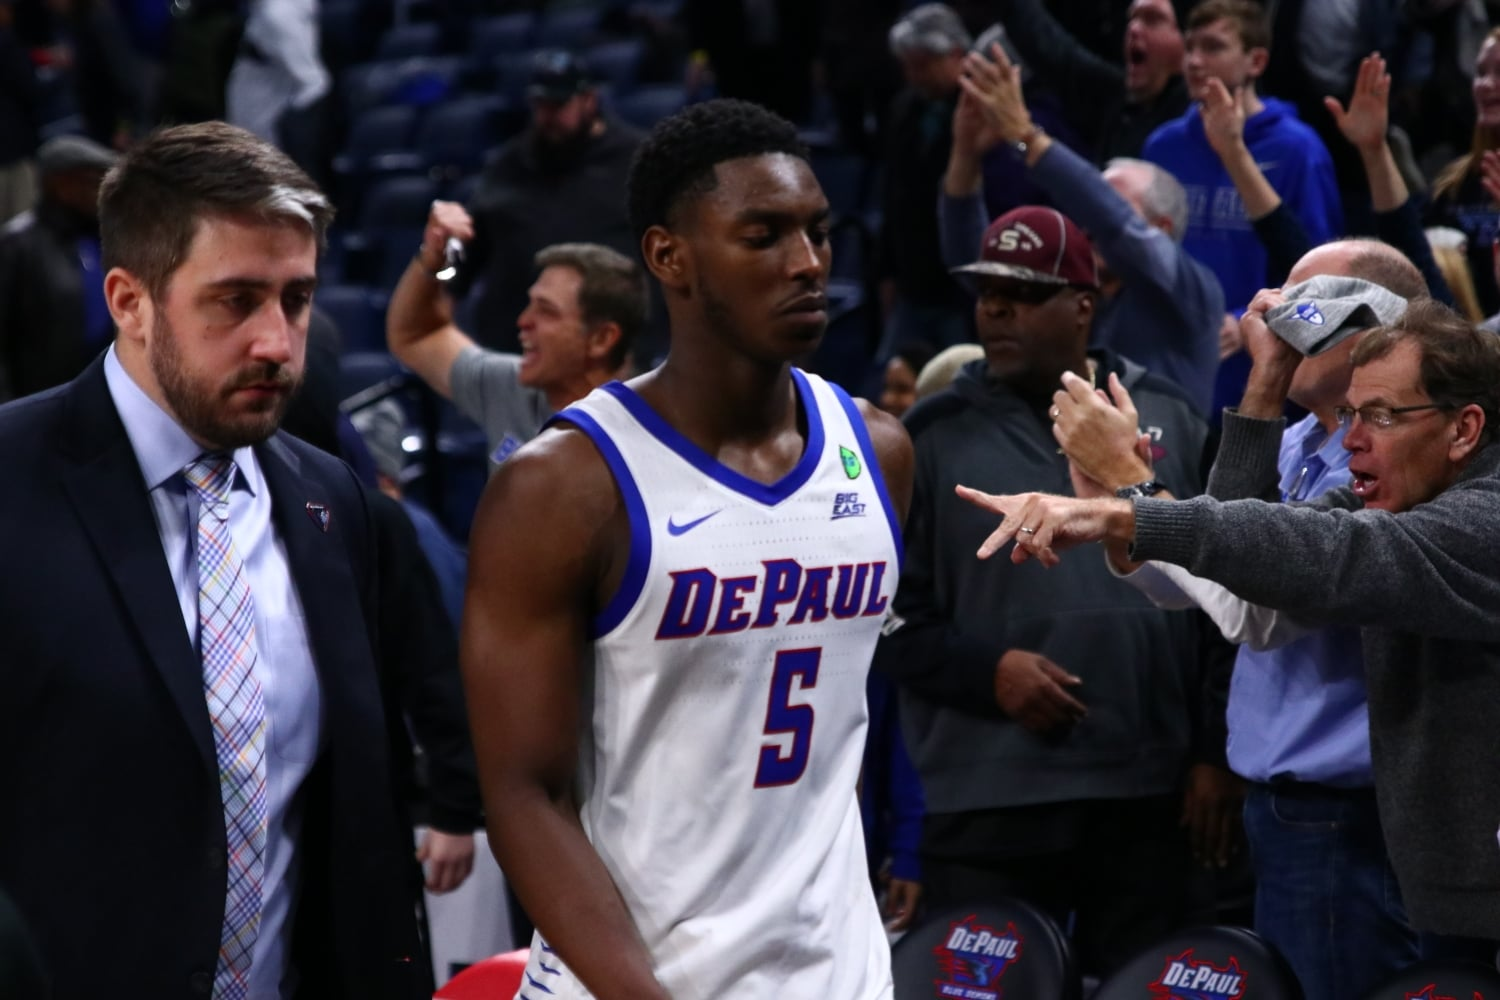 DePaul senior guard Jalen Coleman-Lands walks off the court after a 74-69 loss to Buffalo on Dec. 8 at Wintrust Arena.